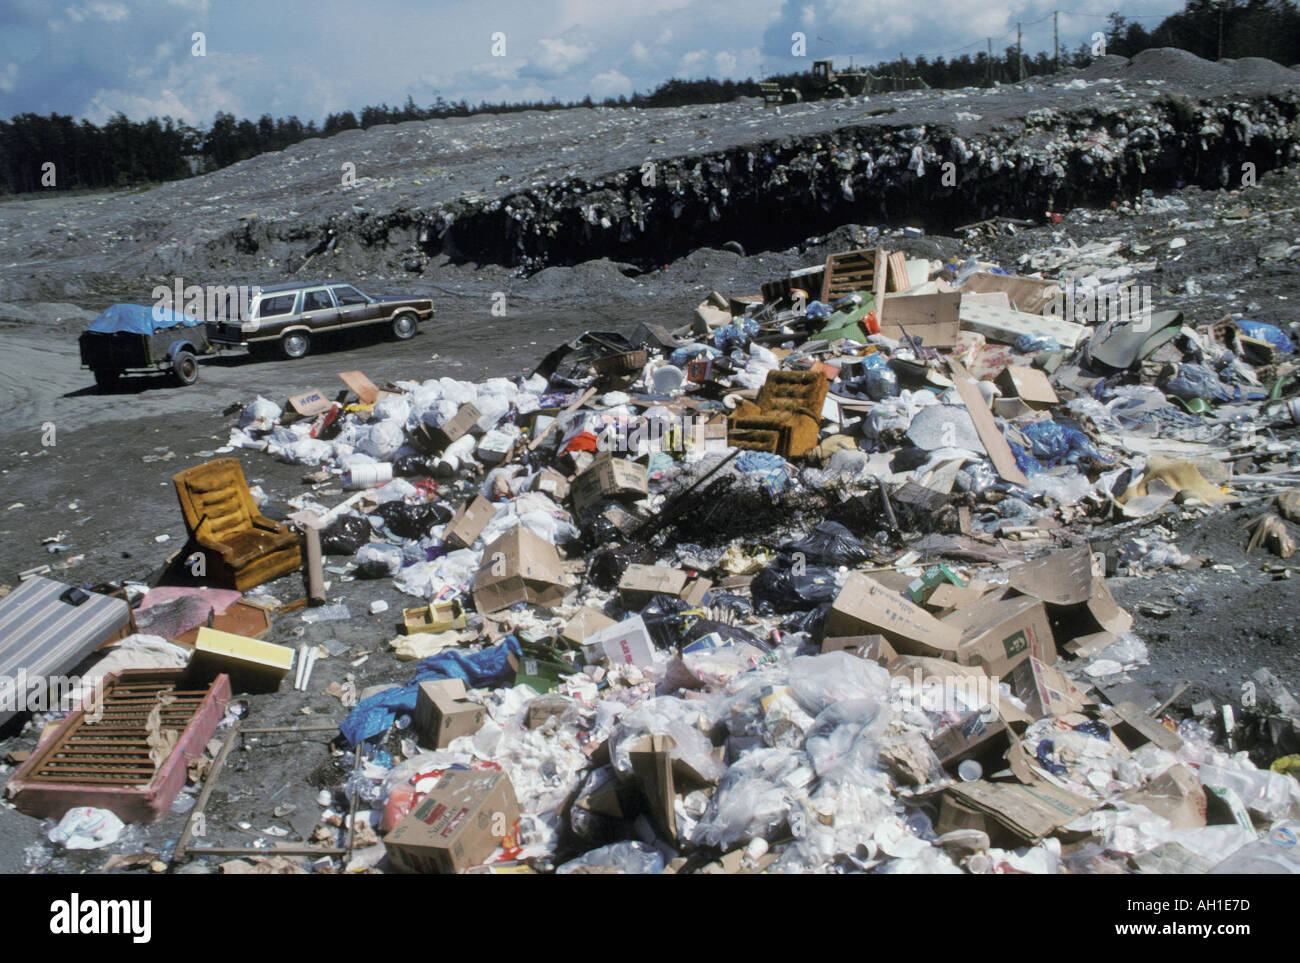 Trash at a open landfill in western Washington USA - Stock Image